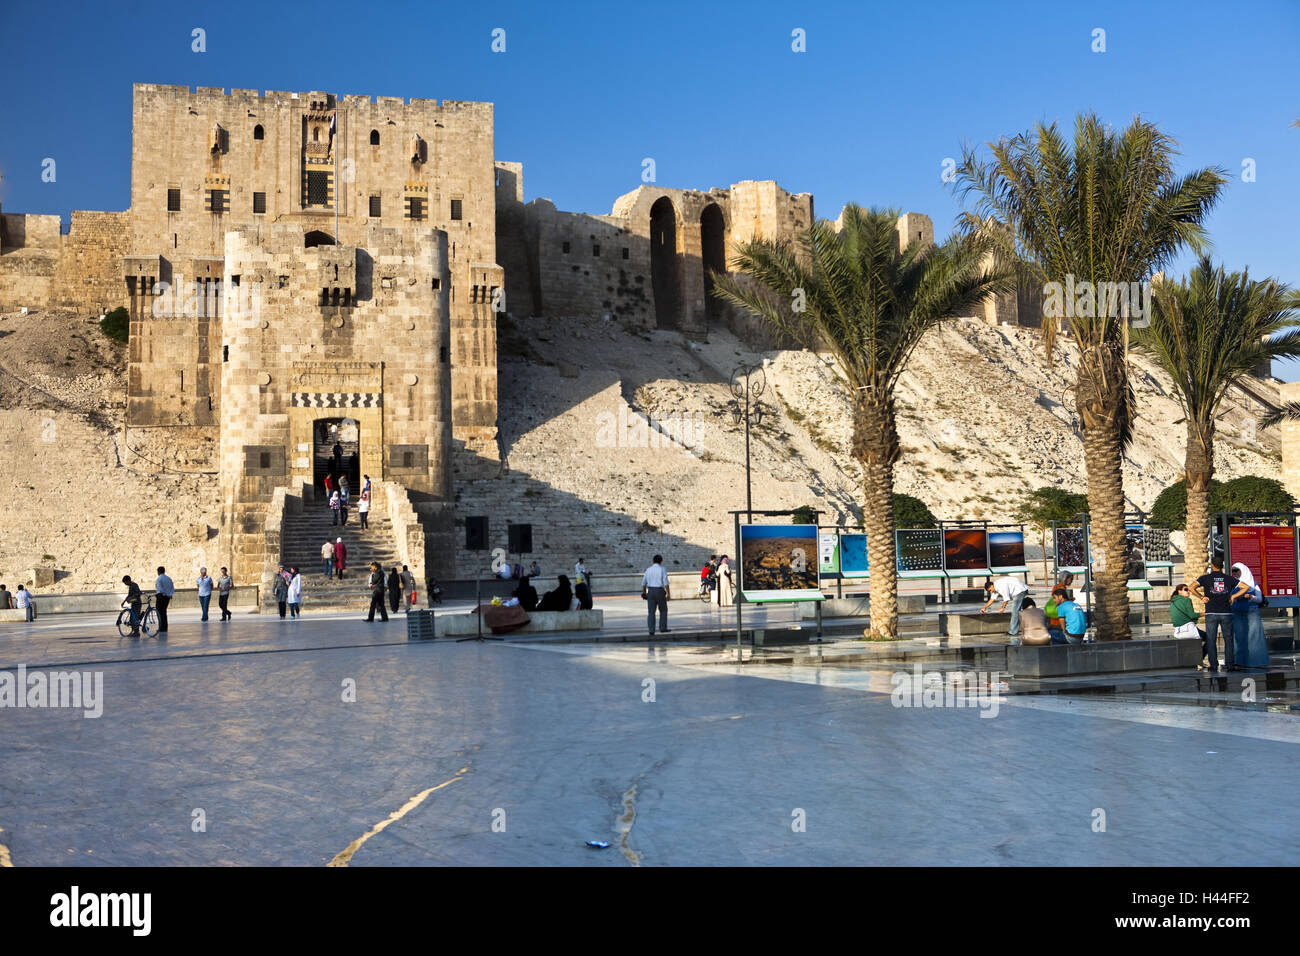 Syria Aleppo Stronghold Tourist Stock Photo 123031190 Alamy